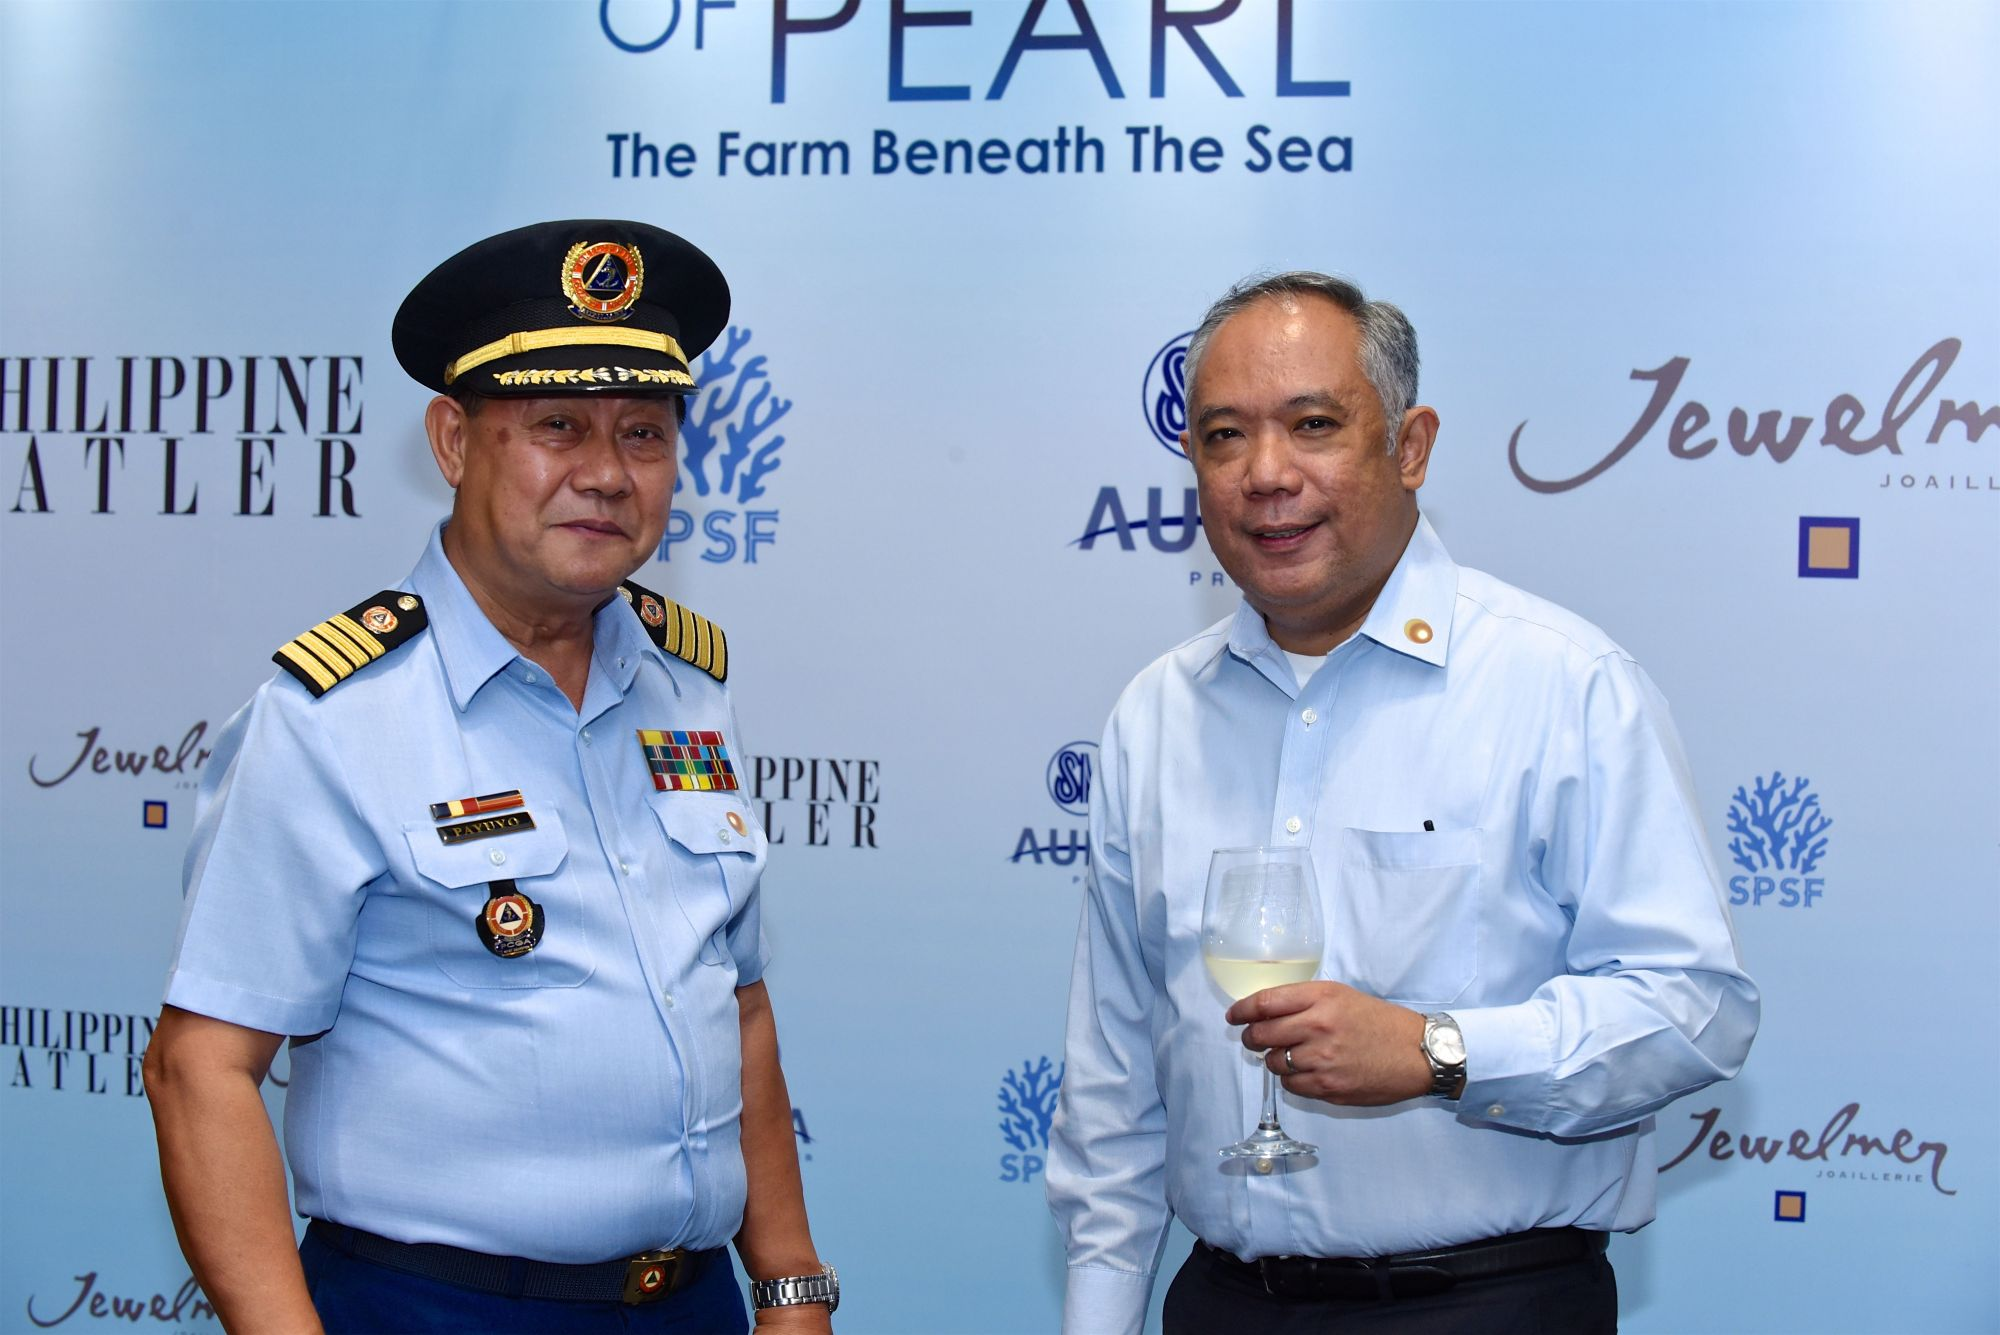 Capt. Payuyo and Vicente De Leon